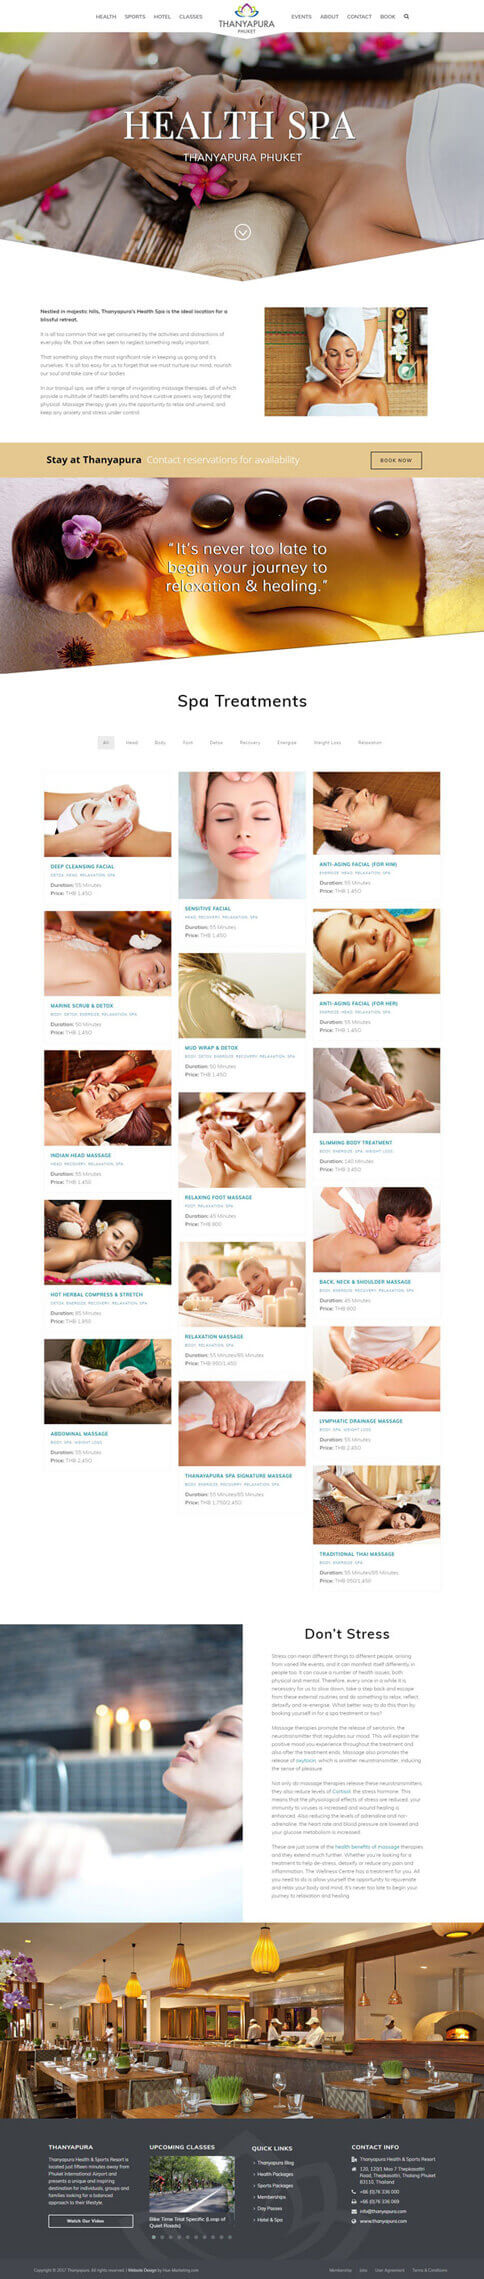 NEW Spa Page - Thanyapura Phuket Website Redesign